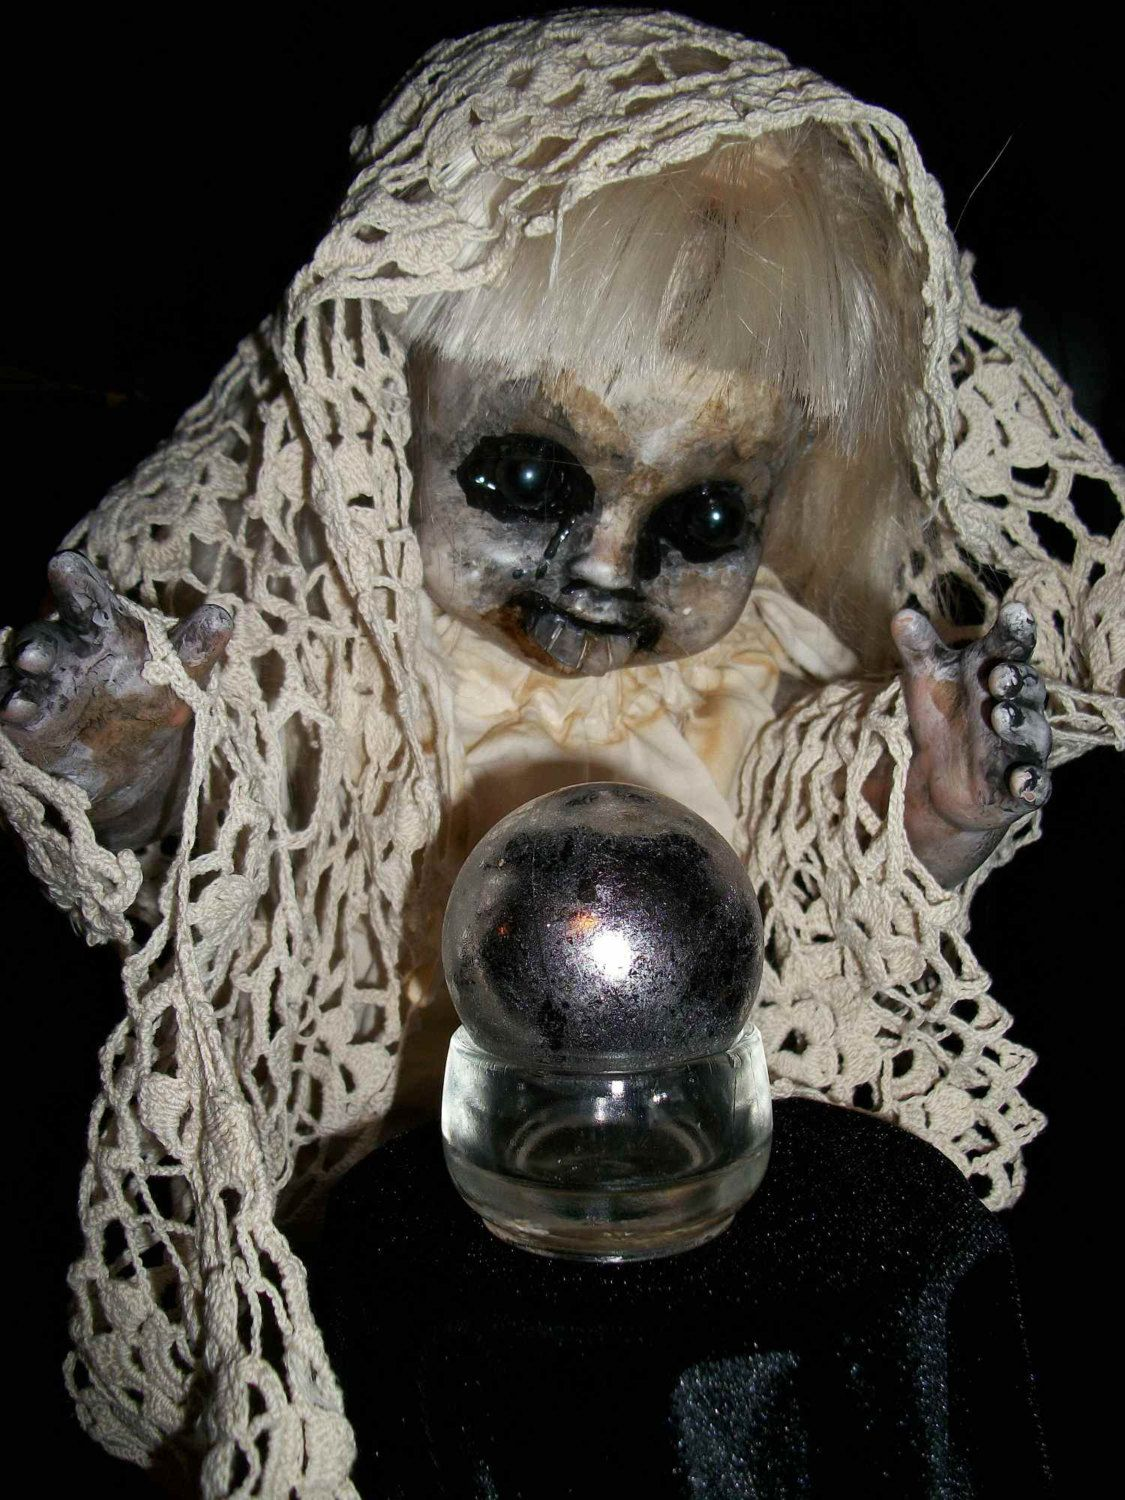 Creepy Altered Art Display Doll By Salvage Artist L